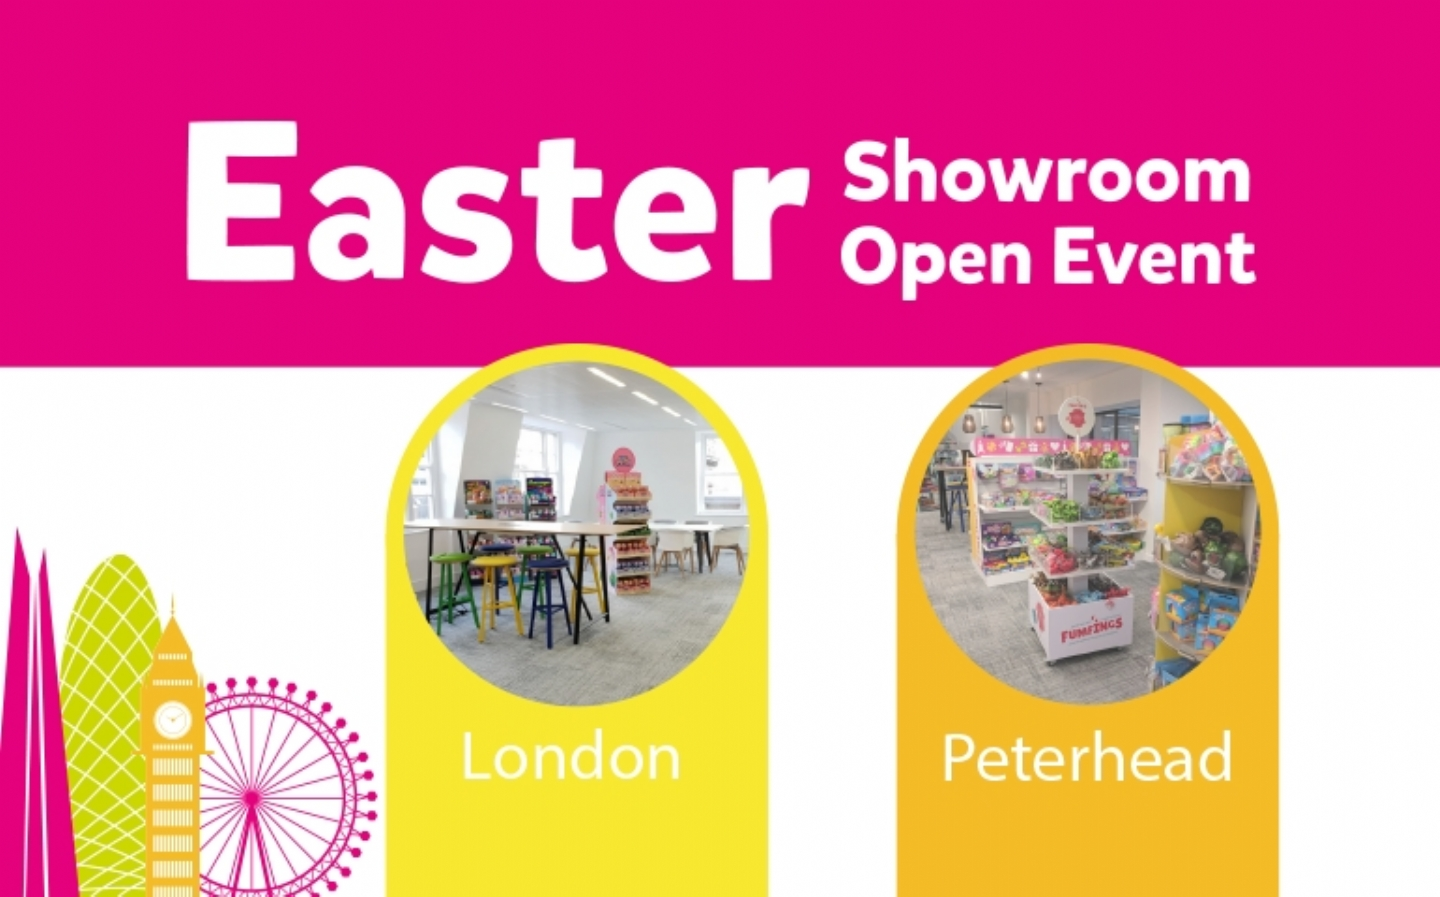 Keycraft to host Easter showroom event to delight customers